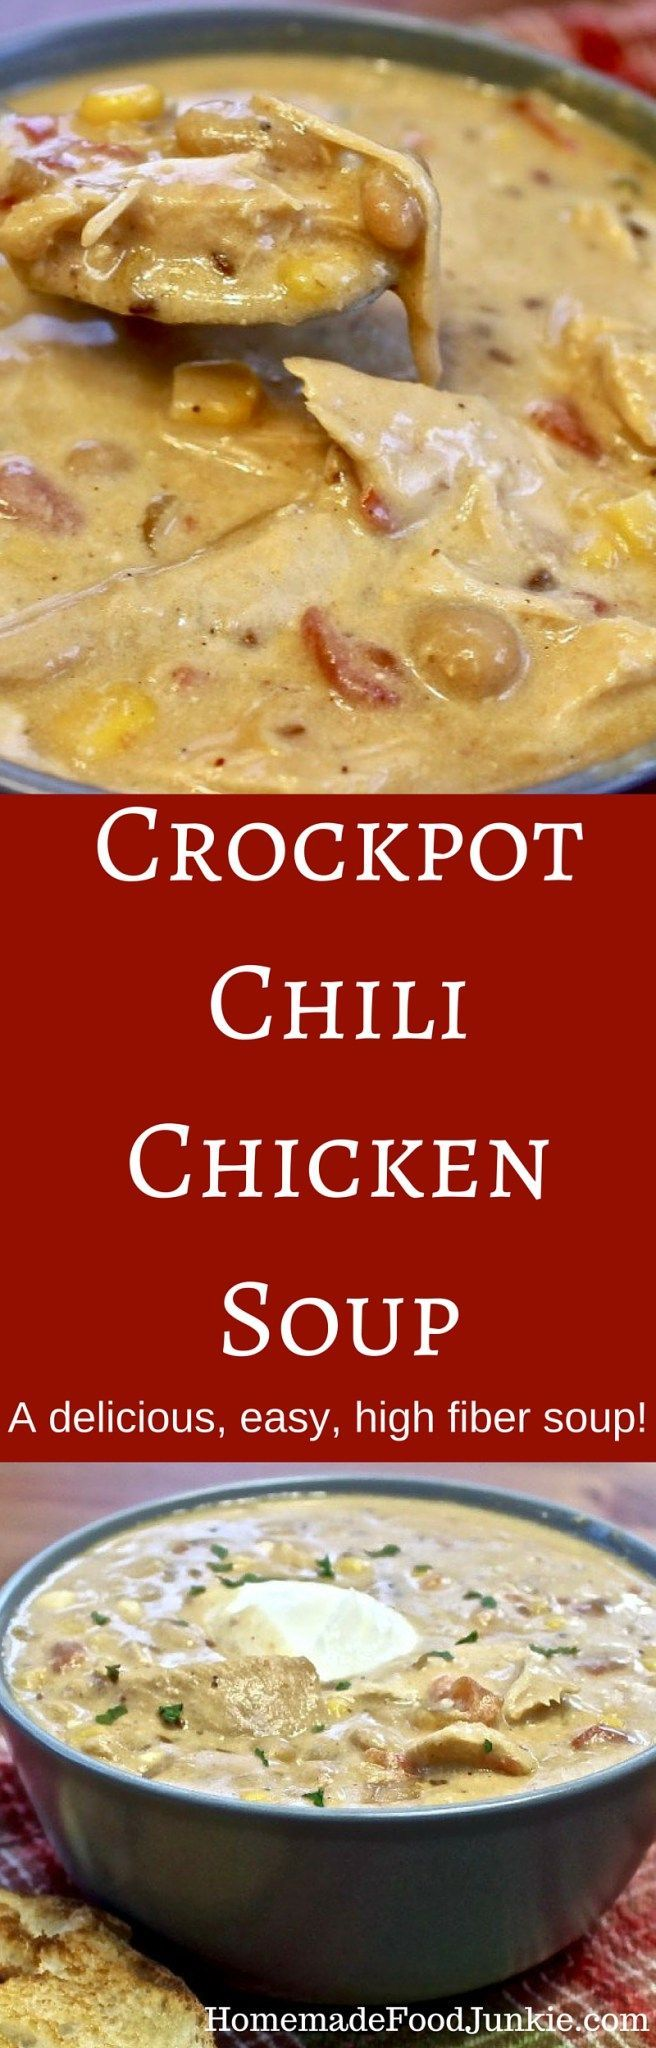 Crockpot Chili Chicken Soup A delicious, easy, high fiber soup! Http://homemadeFoodJunkie.com